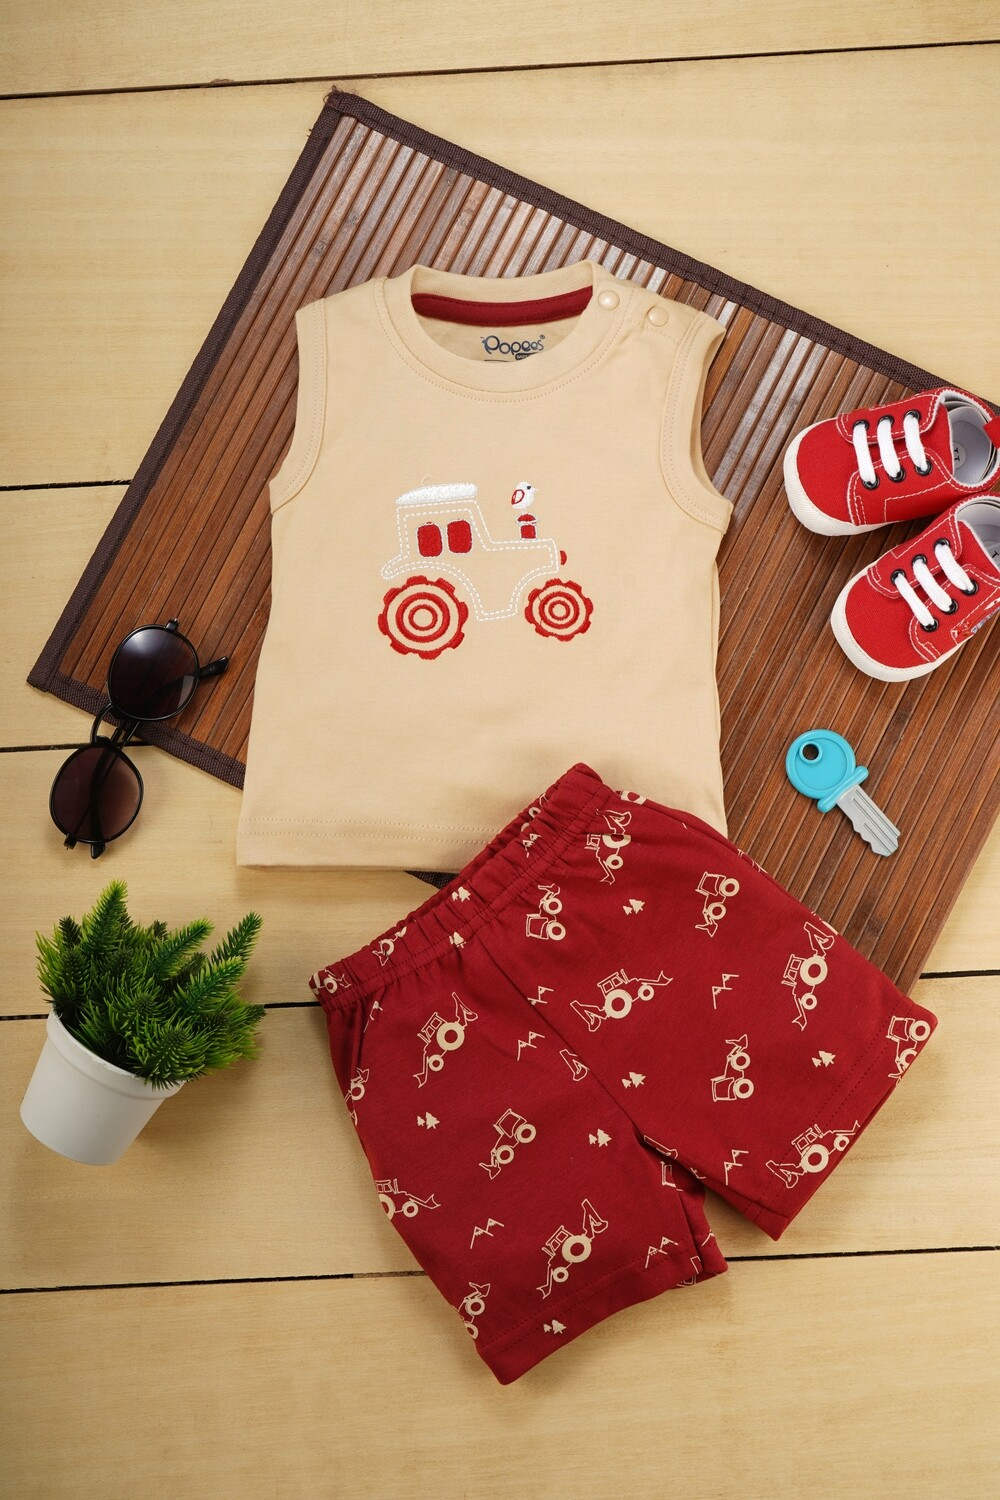 Brandon Beige Sleeveless Jeep T-Shirt with Garnet Red Printed Shorts for Boys M (6-12 Months)